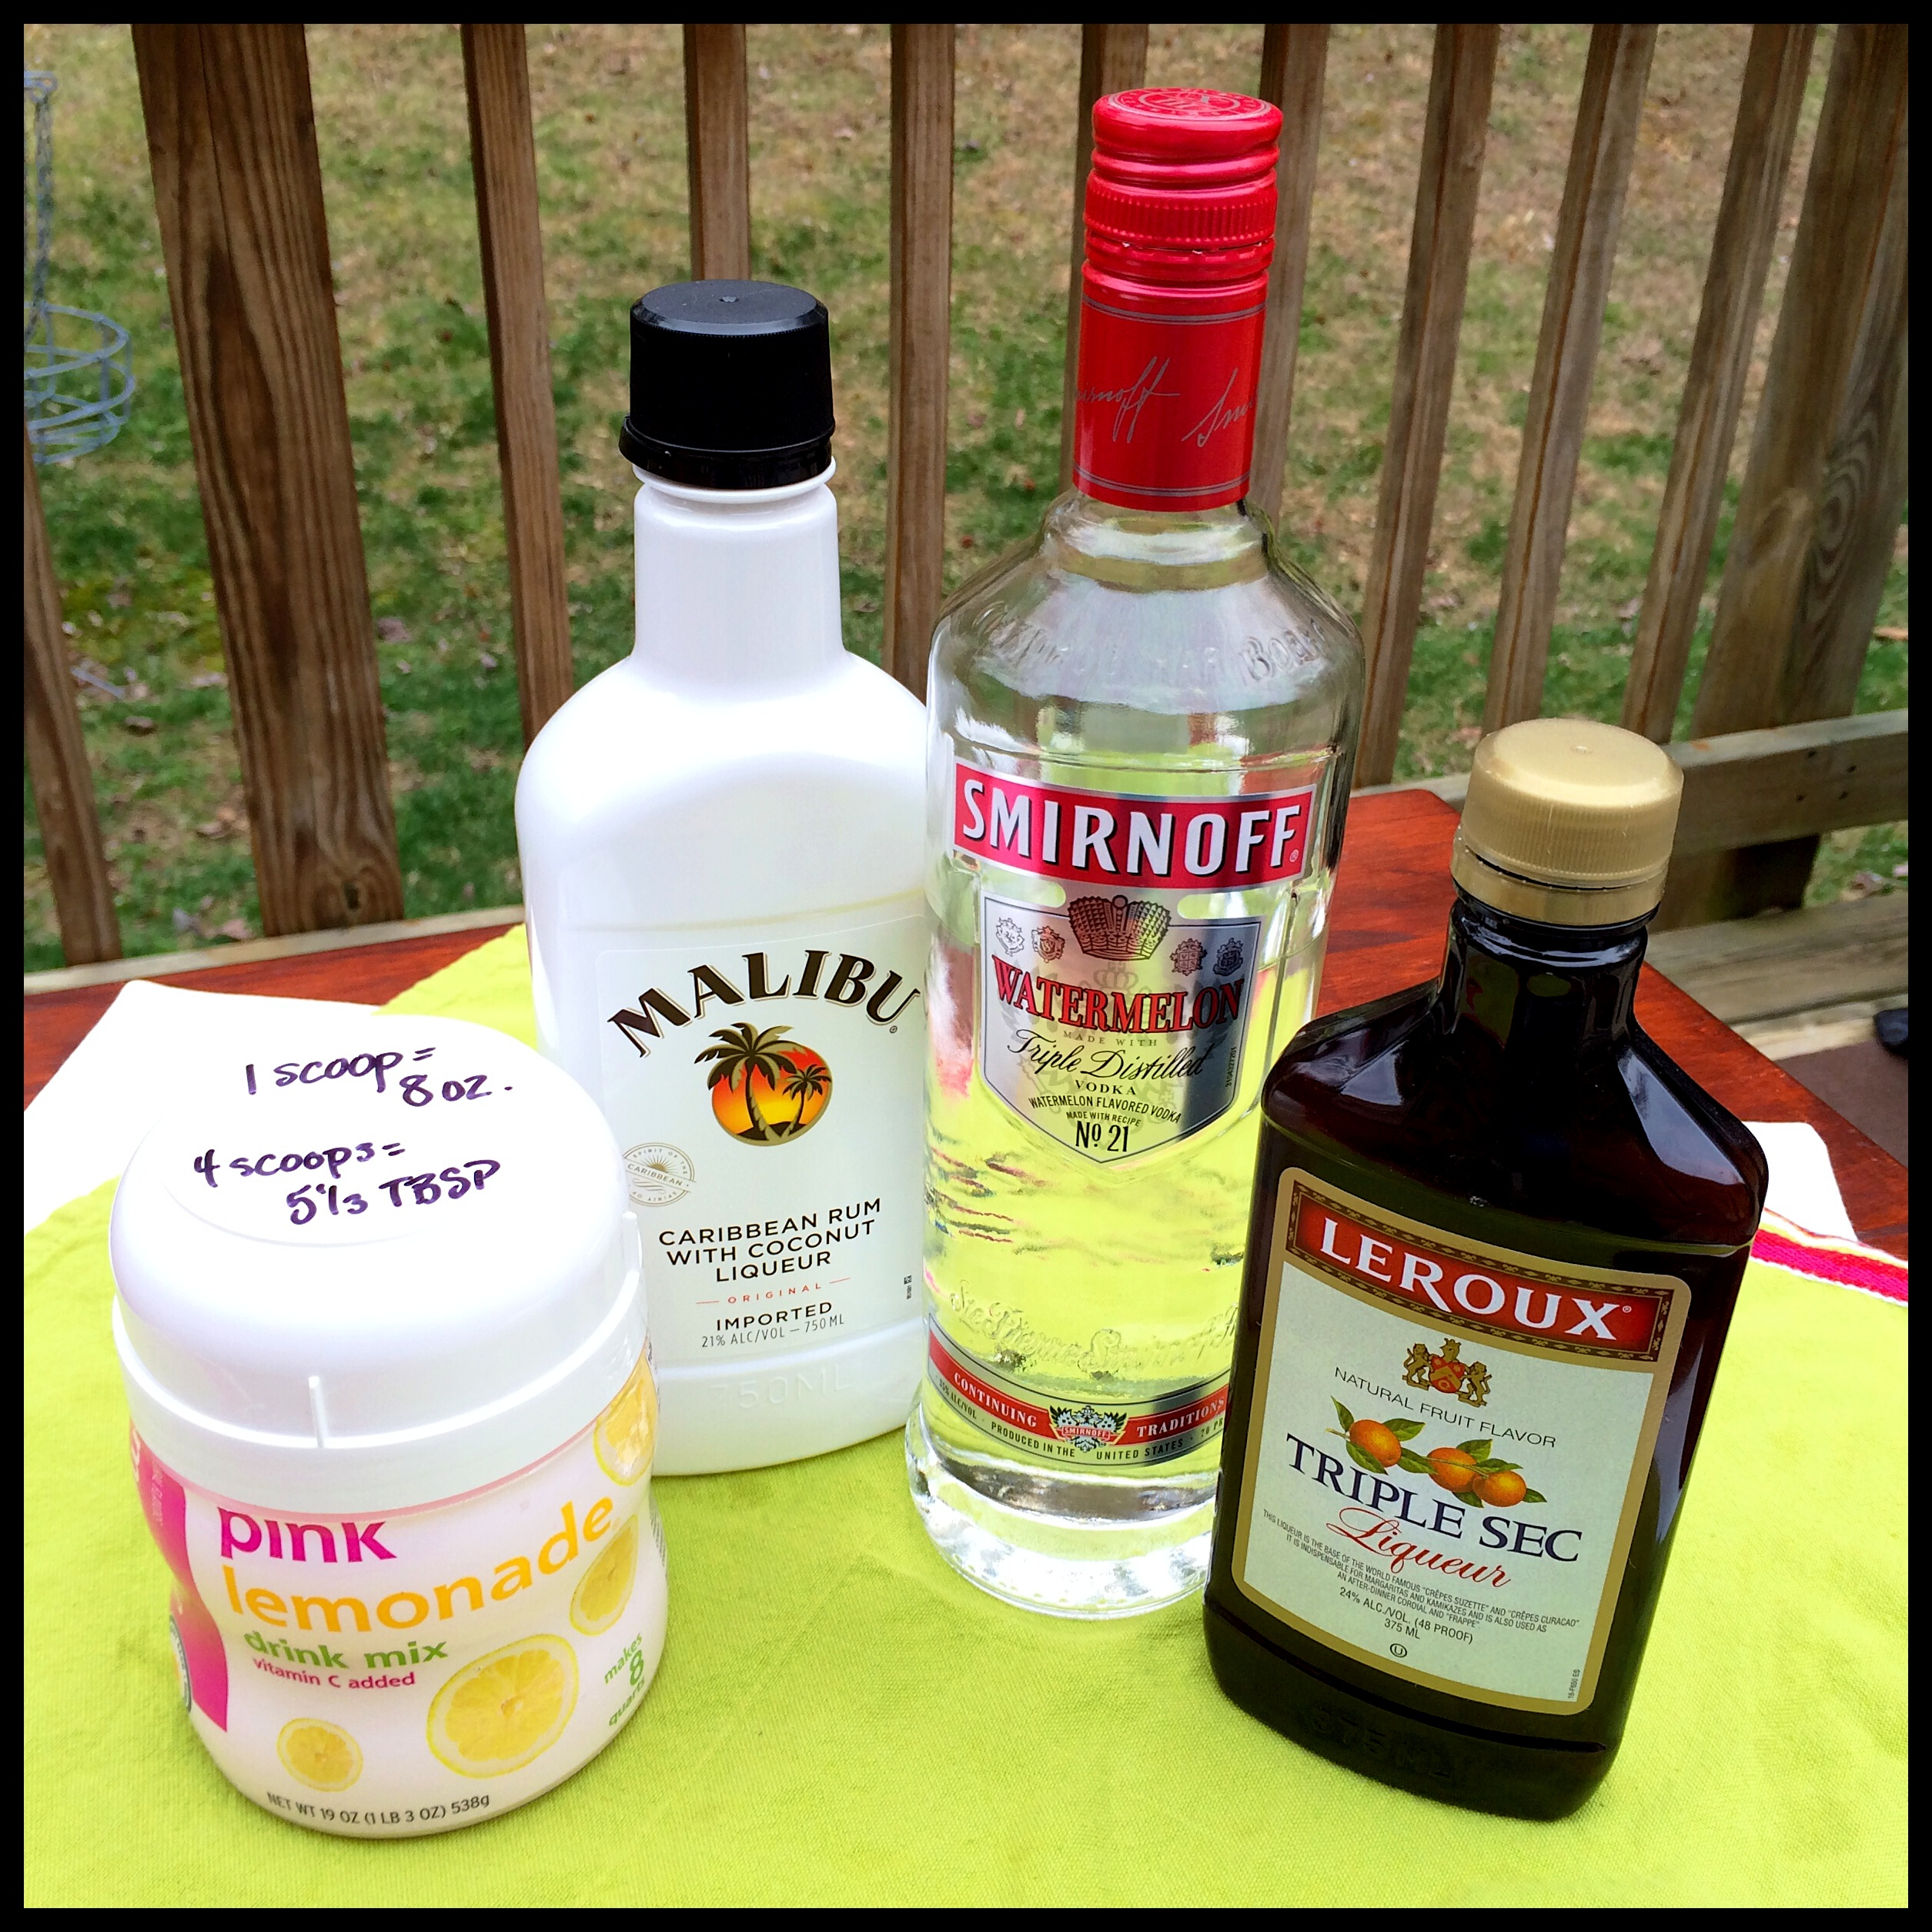 Mixed Drink Recipes With Malibu Coconut Rum